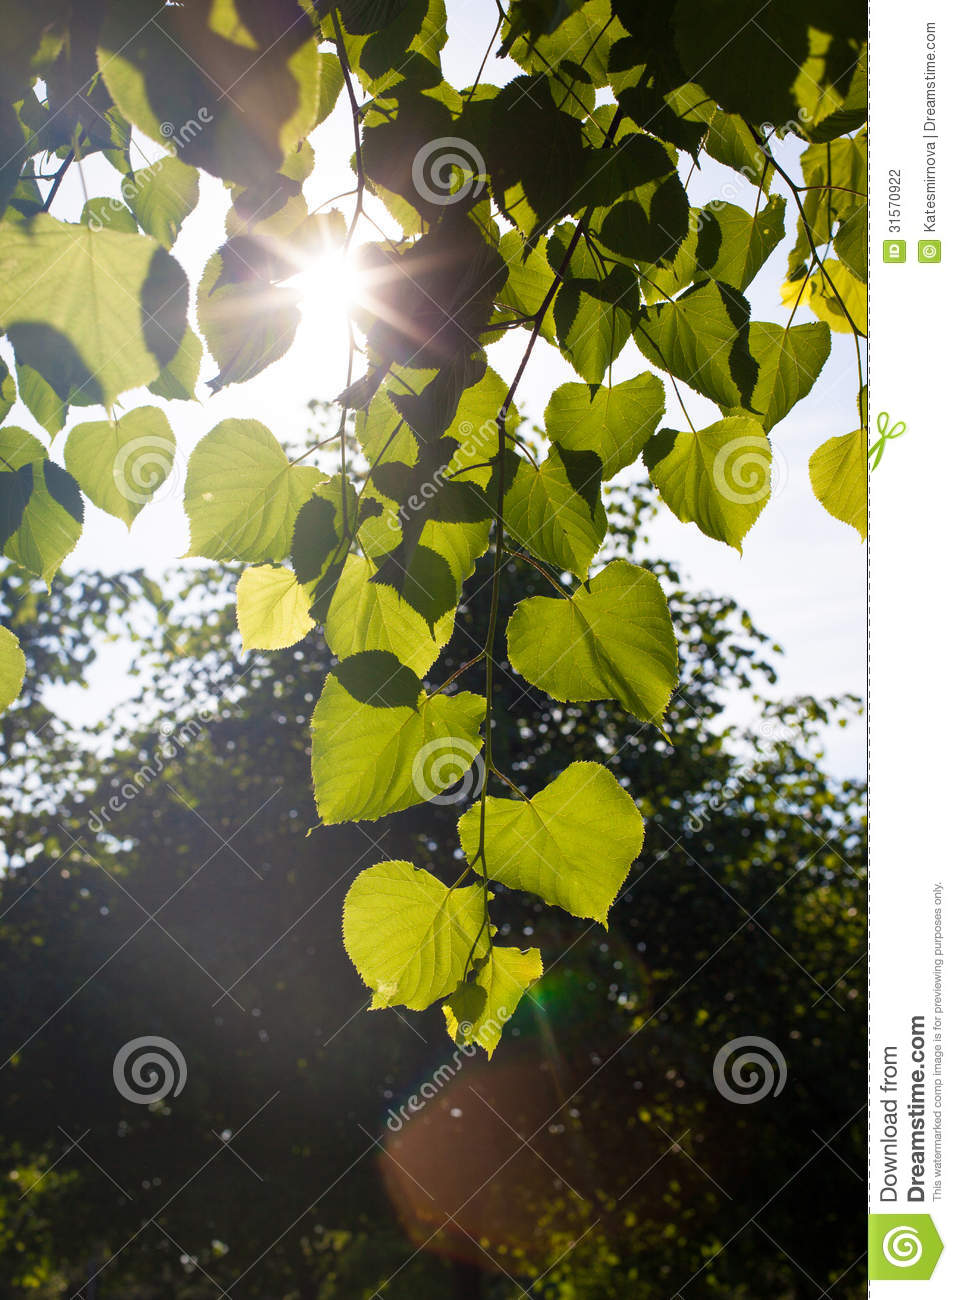 Sun through the leaves of trees